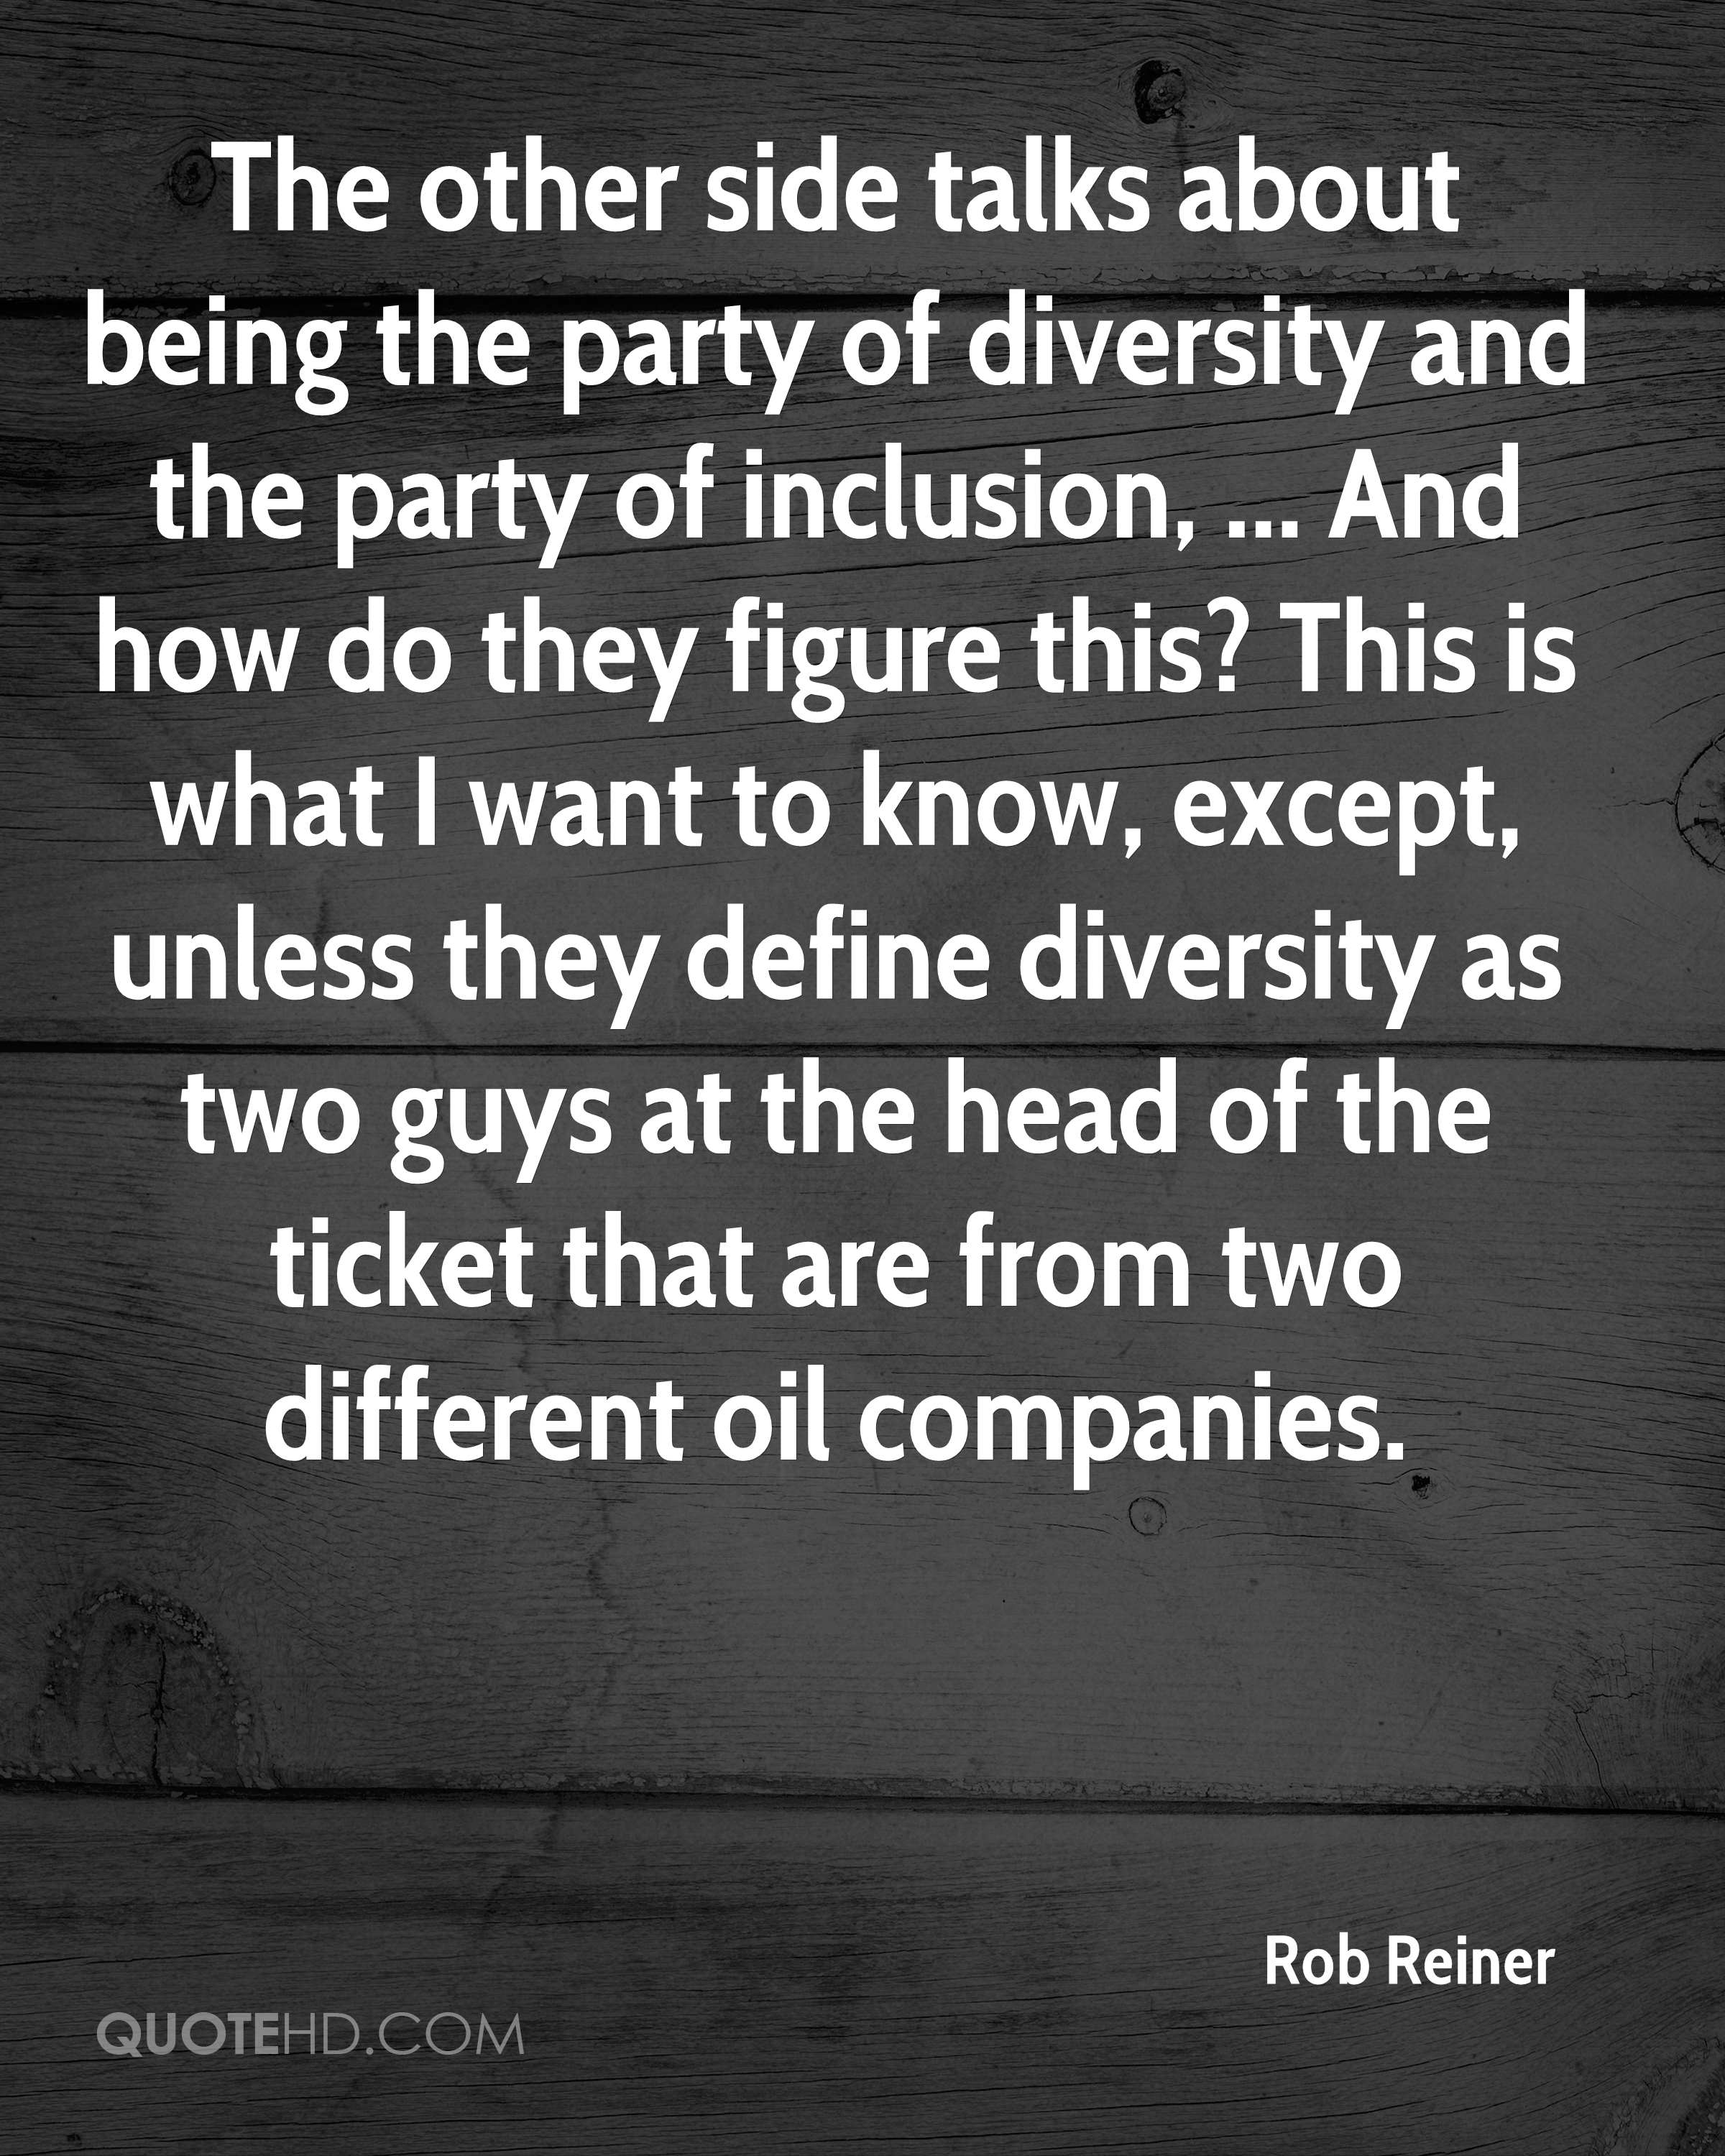 Diversity And Inclusion Quotes Rob Reiner Quotes  Quotehd